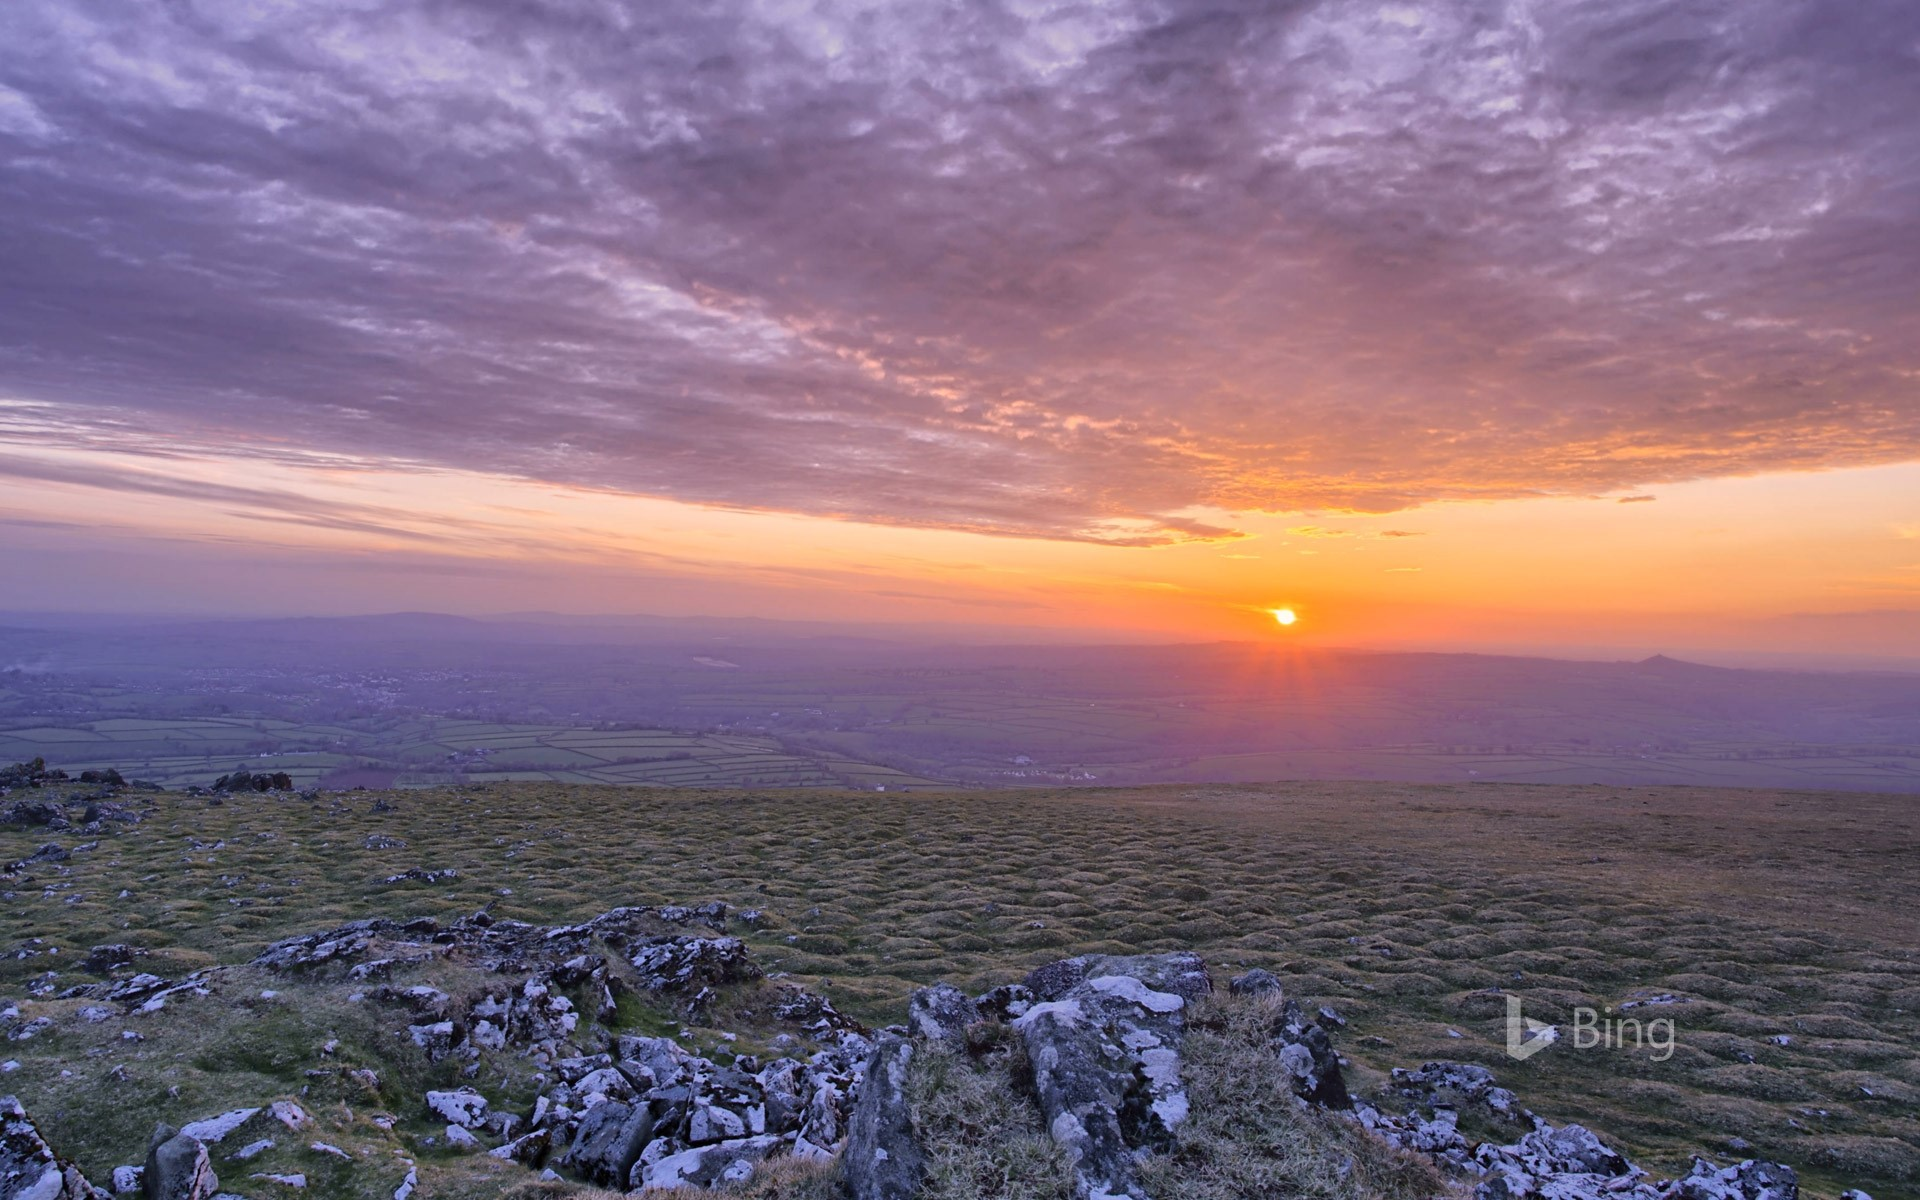 Sun setting in Dartmoor National Park, Devon